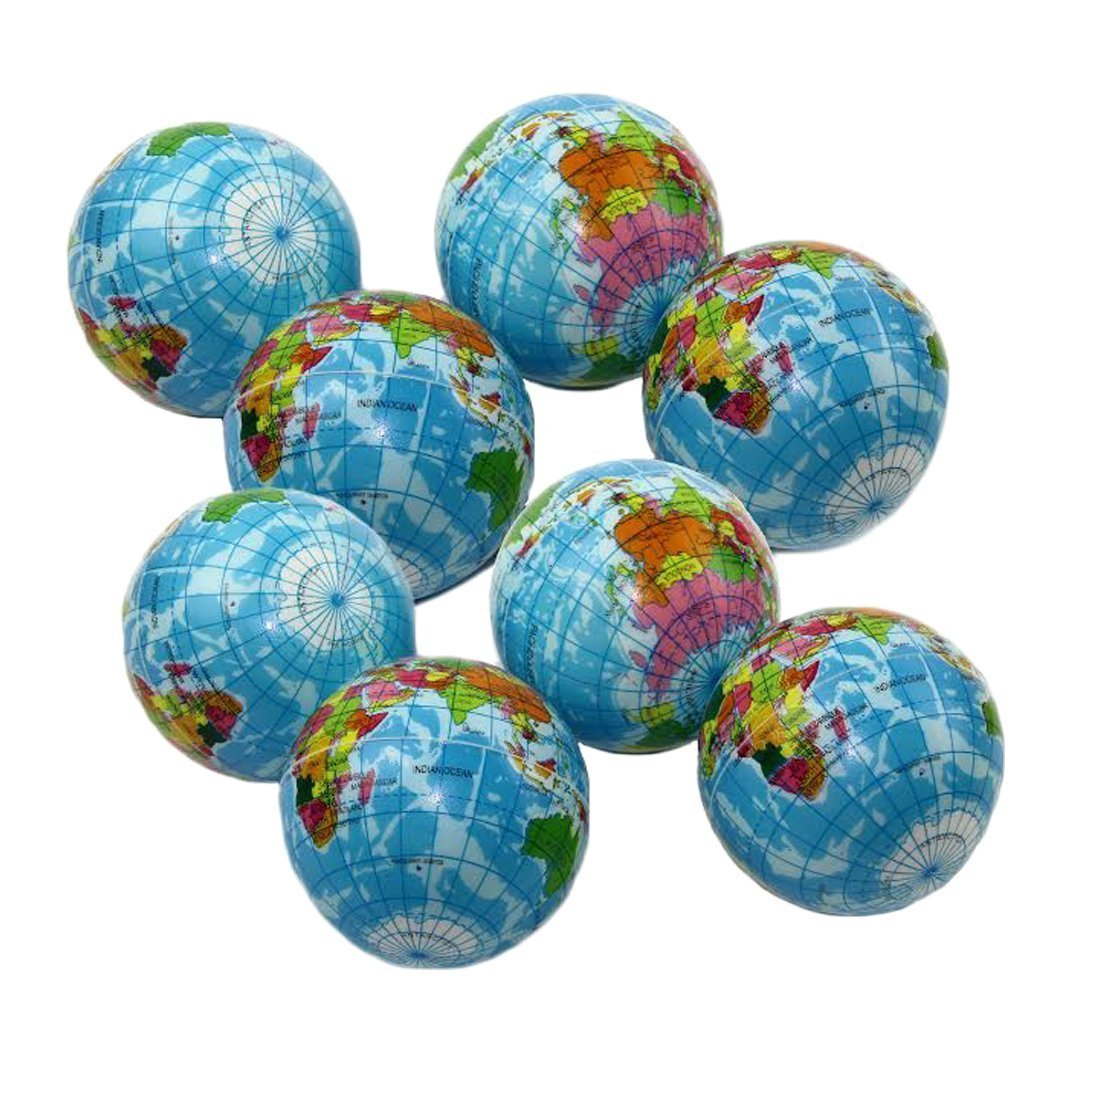 Dazzling Toys Squeezable Stress Ball 12 Pack - Tension Relief Activity Balls Set of 12 - Pressure Relieving Health Balls - Therapeutic Relaxing Squeeze Ball Pack of 12 Globe Pattern Balls